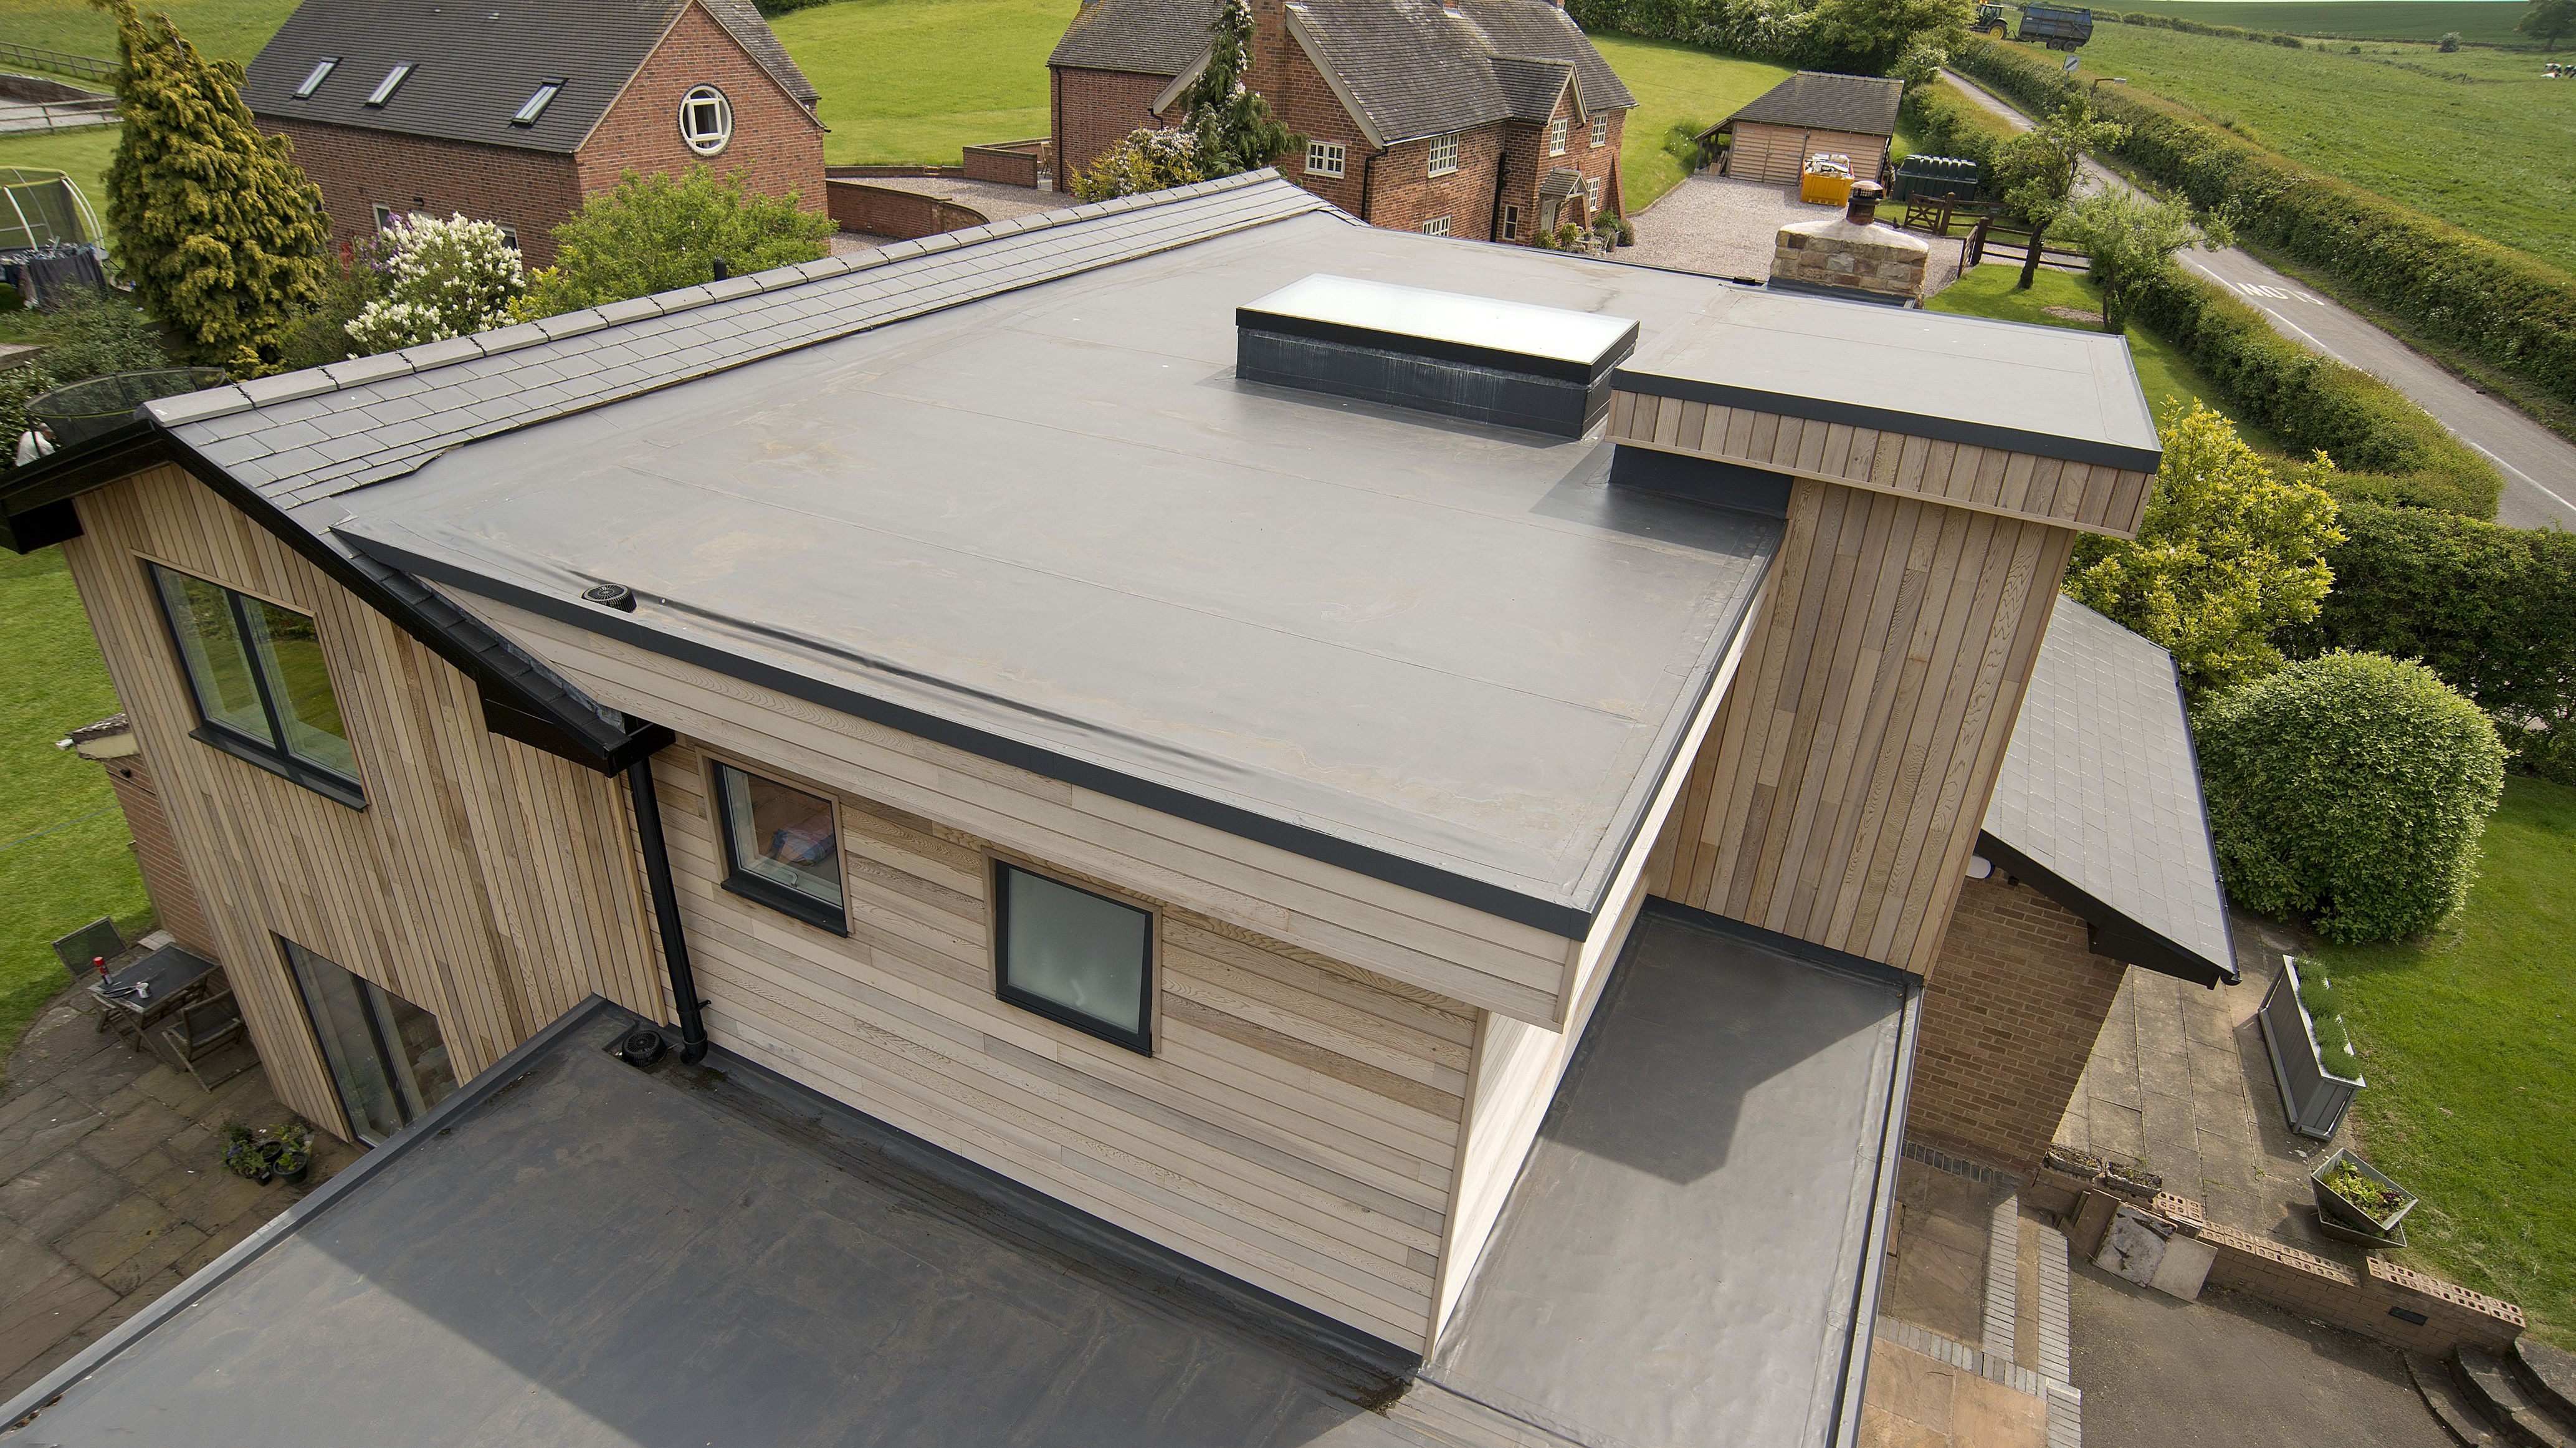 Sarnafil The Best Choice For This Complex Self Build Project Flat Roof Roofing Options Building